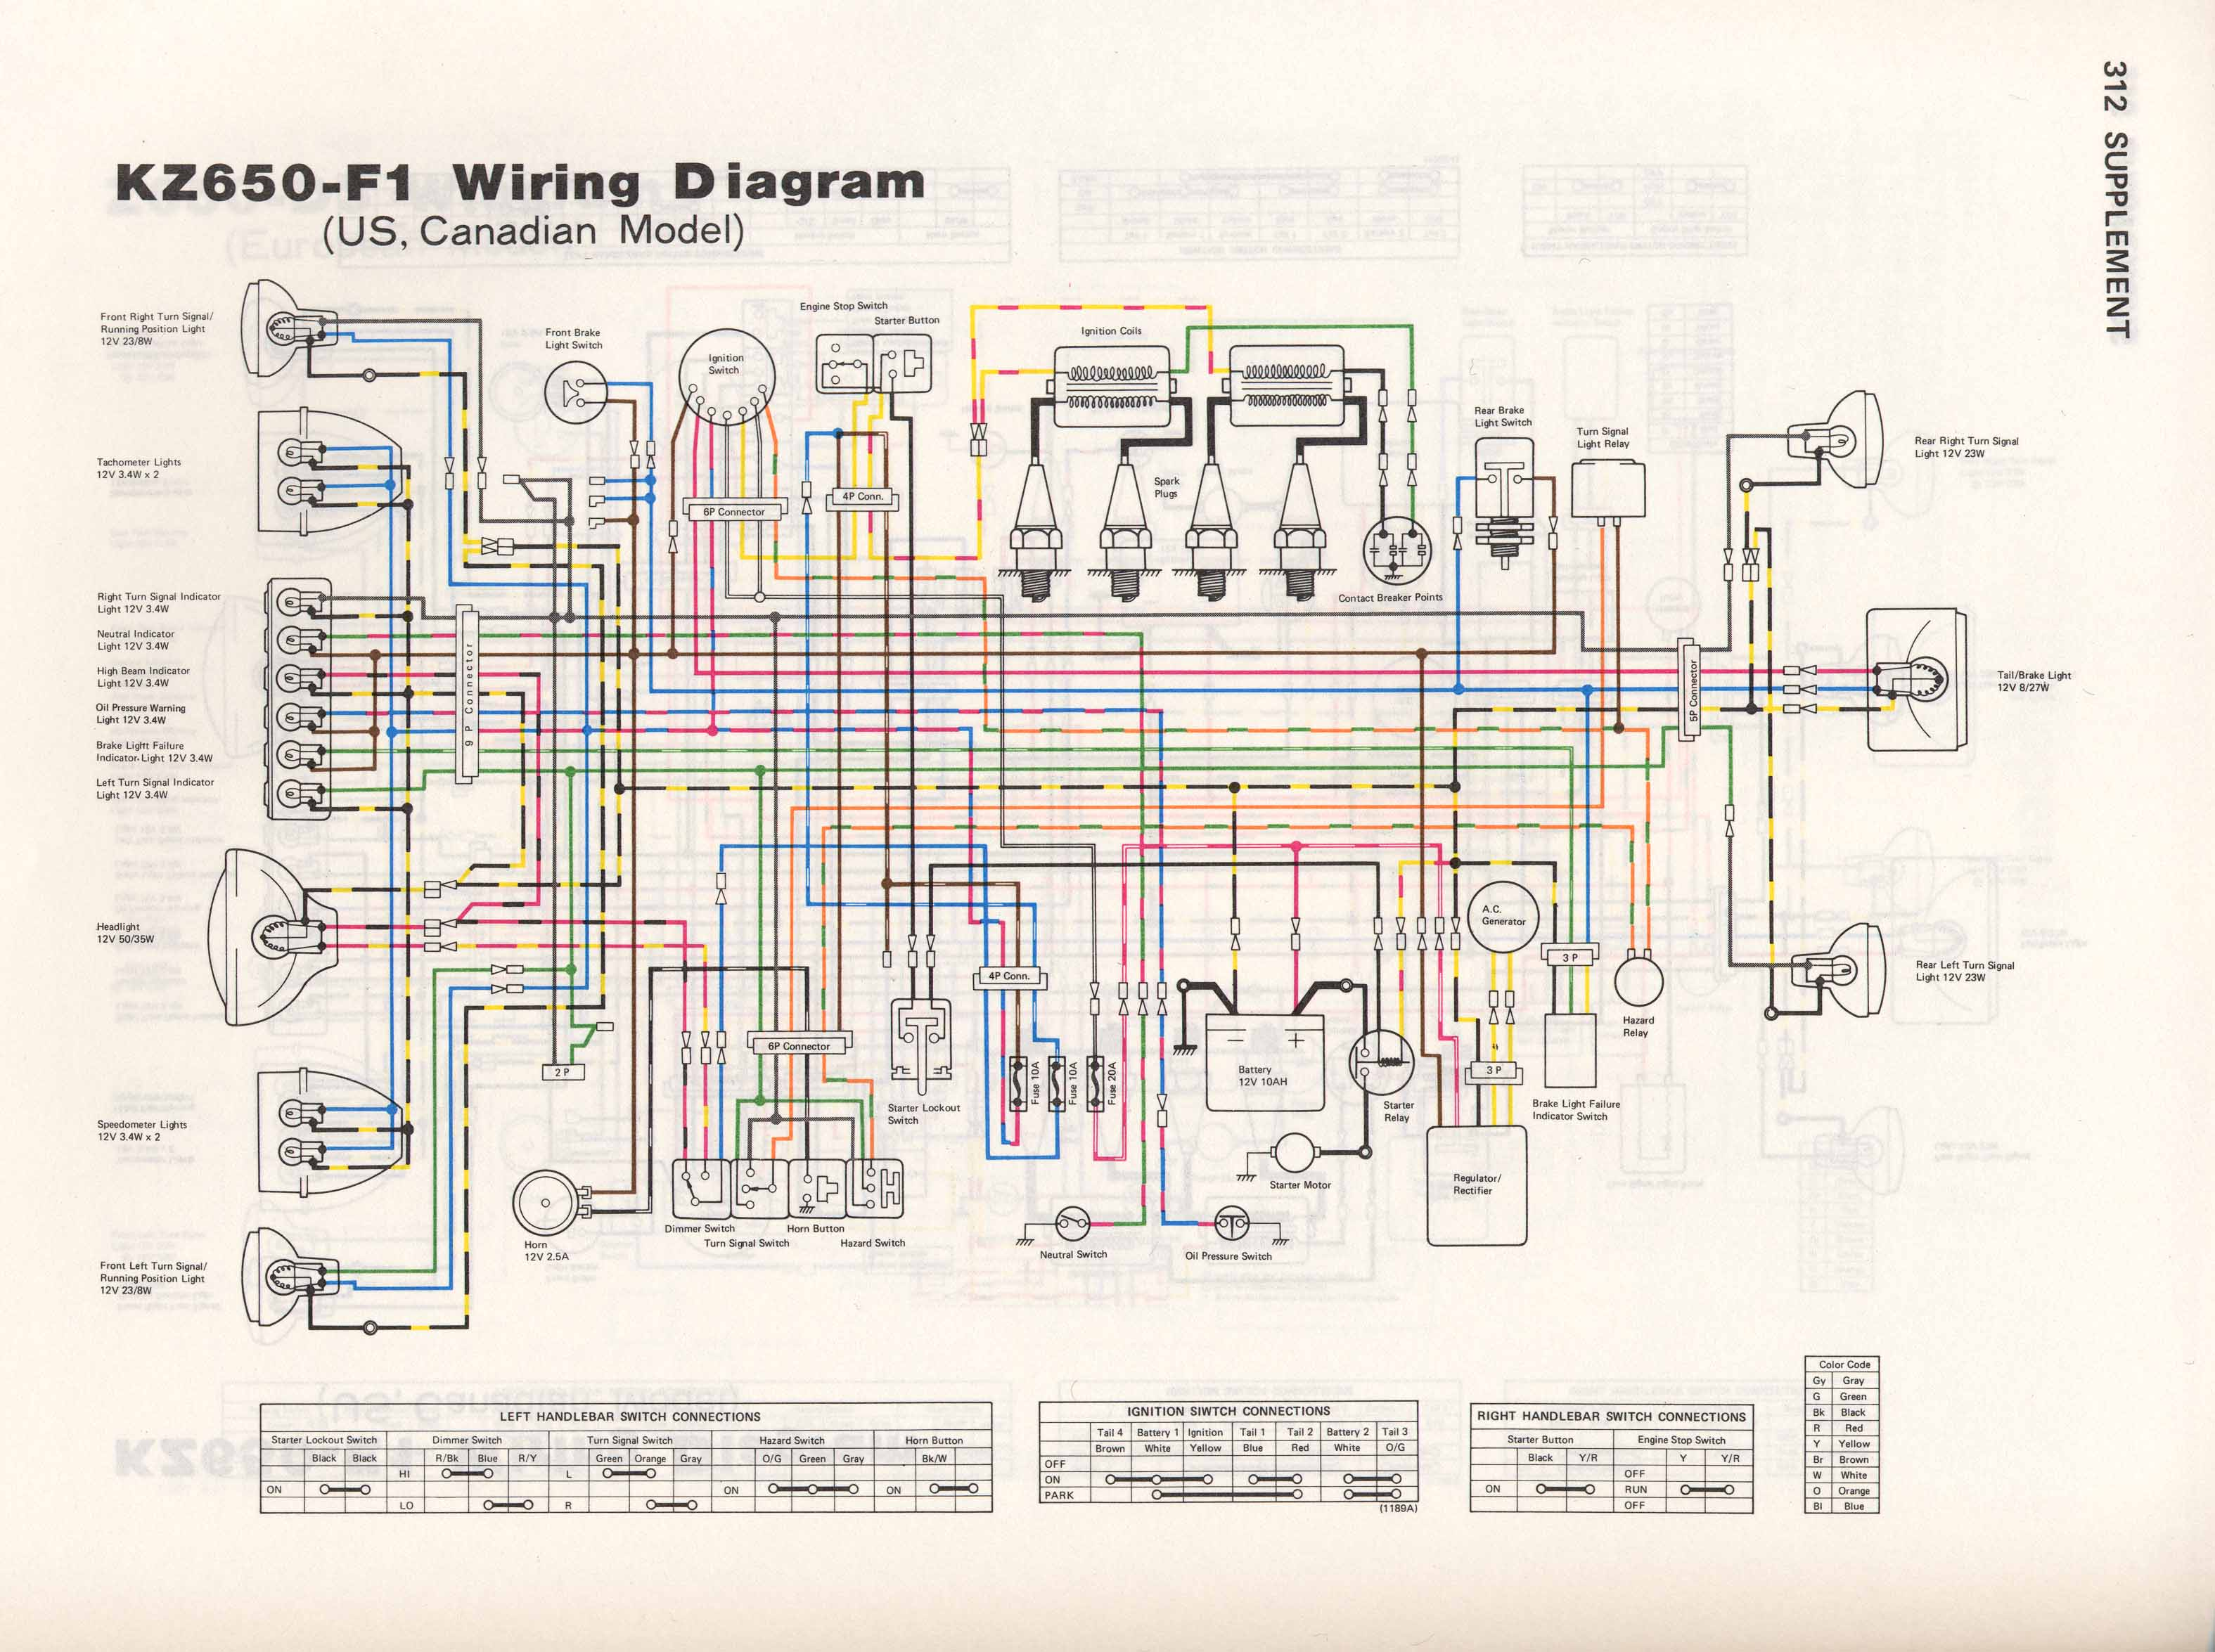 2011 Kawasaki Teryx Wiring Diagram Simple Schema Vulcan 900 For A Motorcycle Kz650 Info Diagrams Hotwire